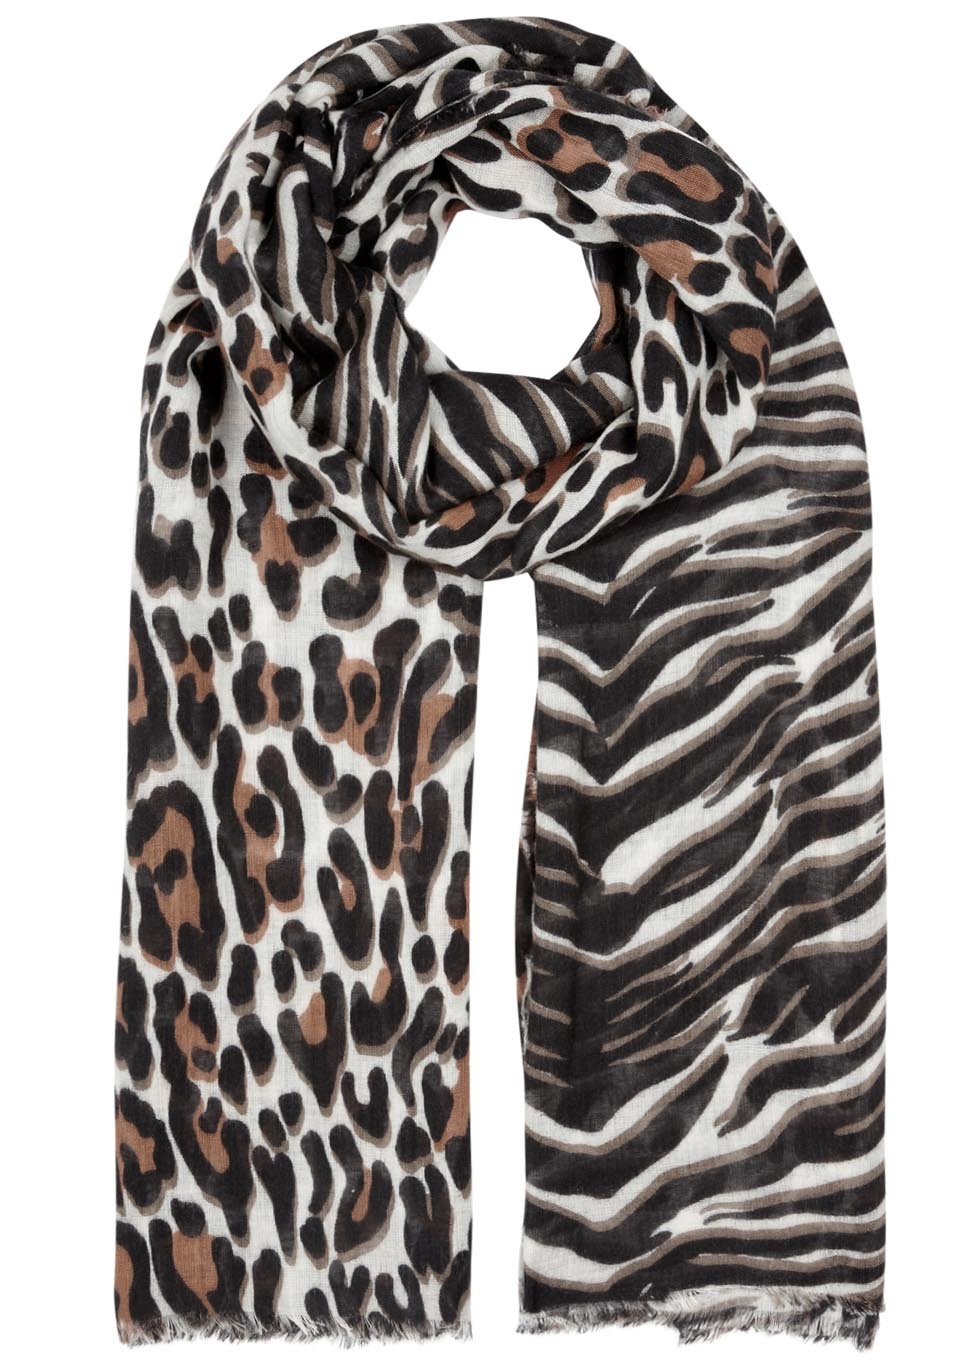 Ivory Animal Print Wool Blend Scarf - secondary colour: white; predominant colour: chocolate brown; occasions: casual; type of pattern: heavy; style: regular; size: standard; material: fabric; pattern: animal print; season: a/w 2016; wardrobe: highlight